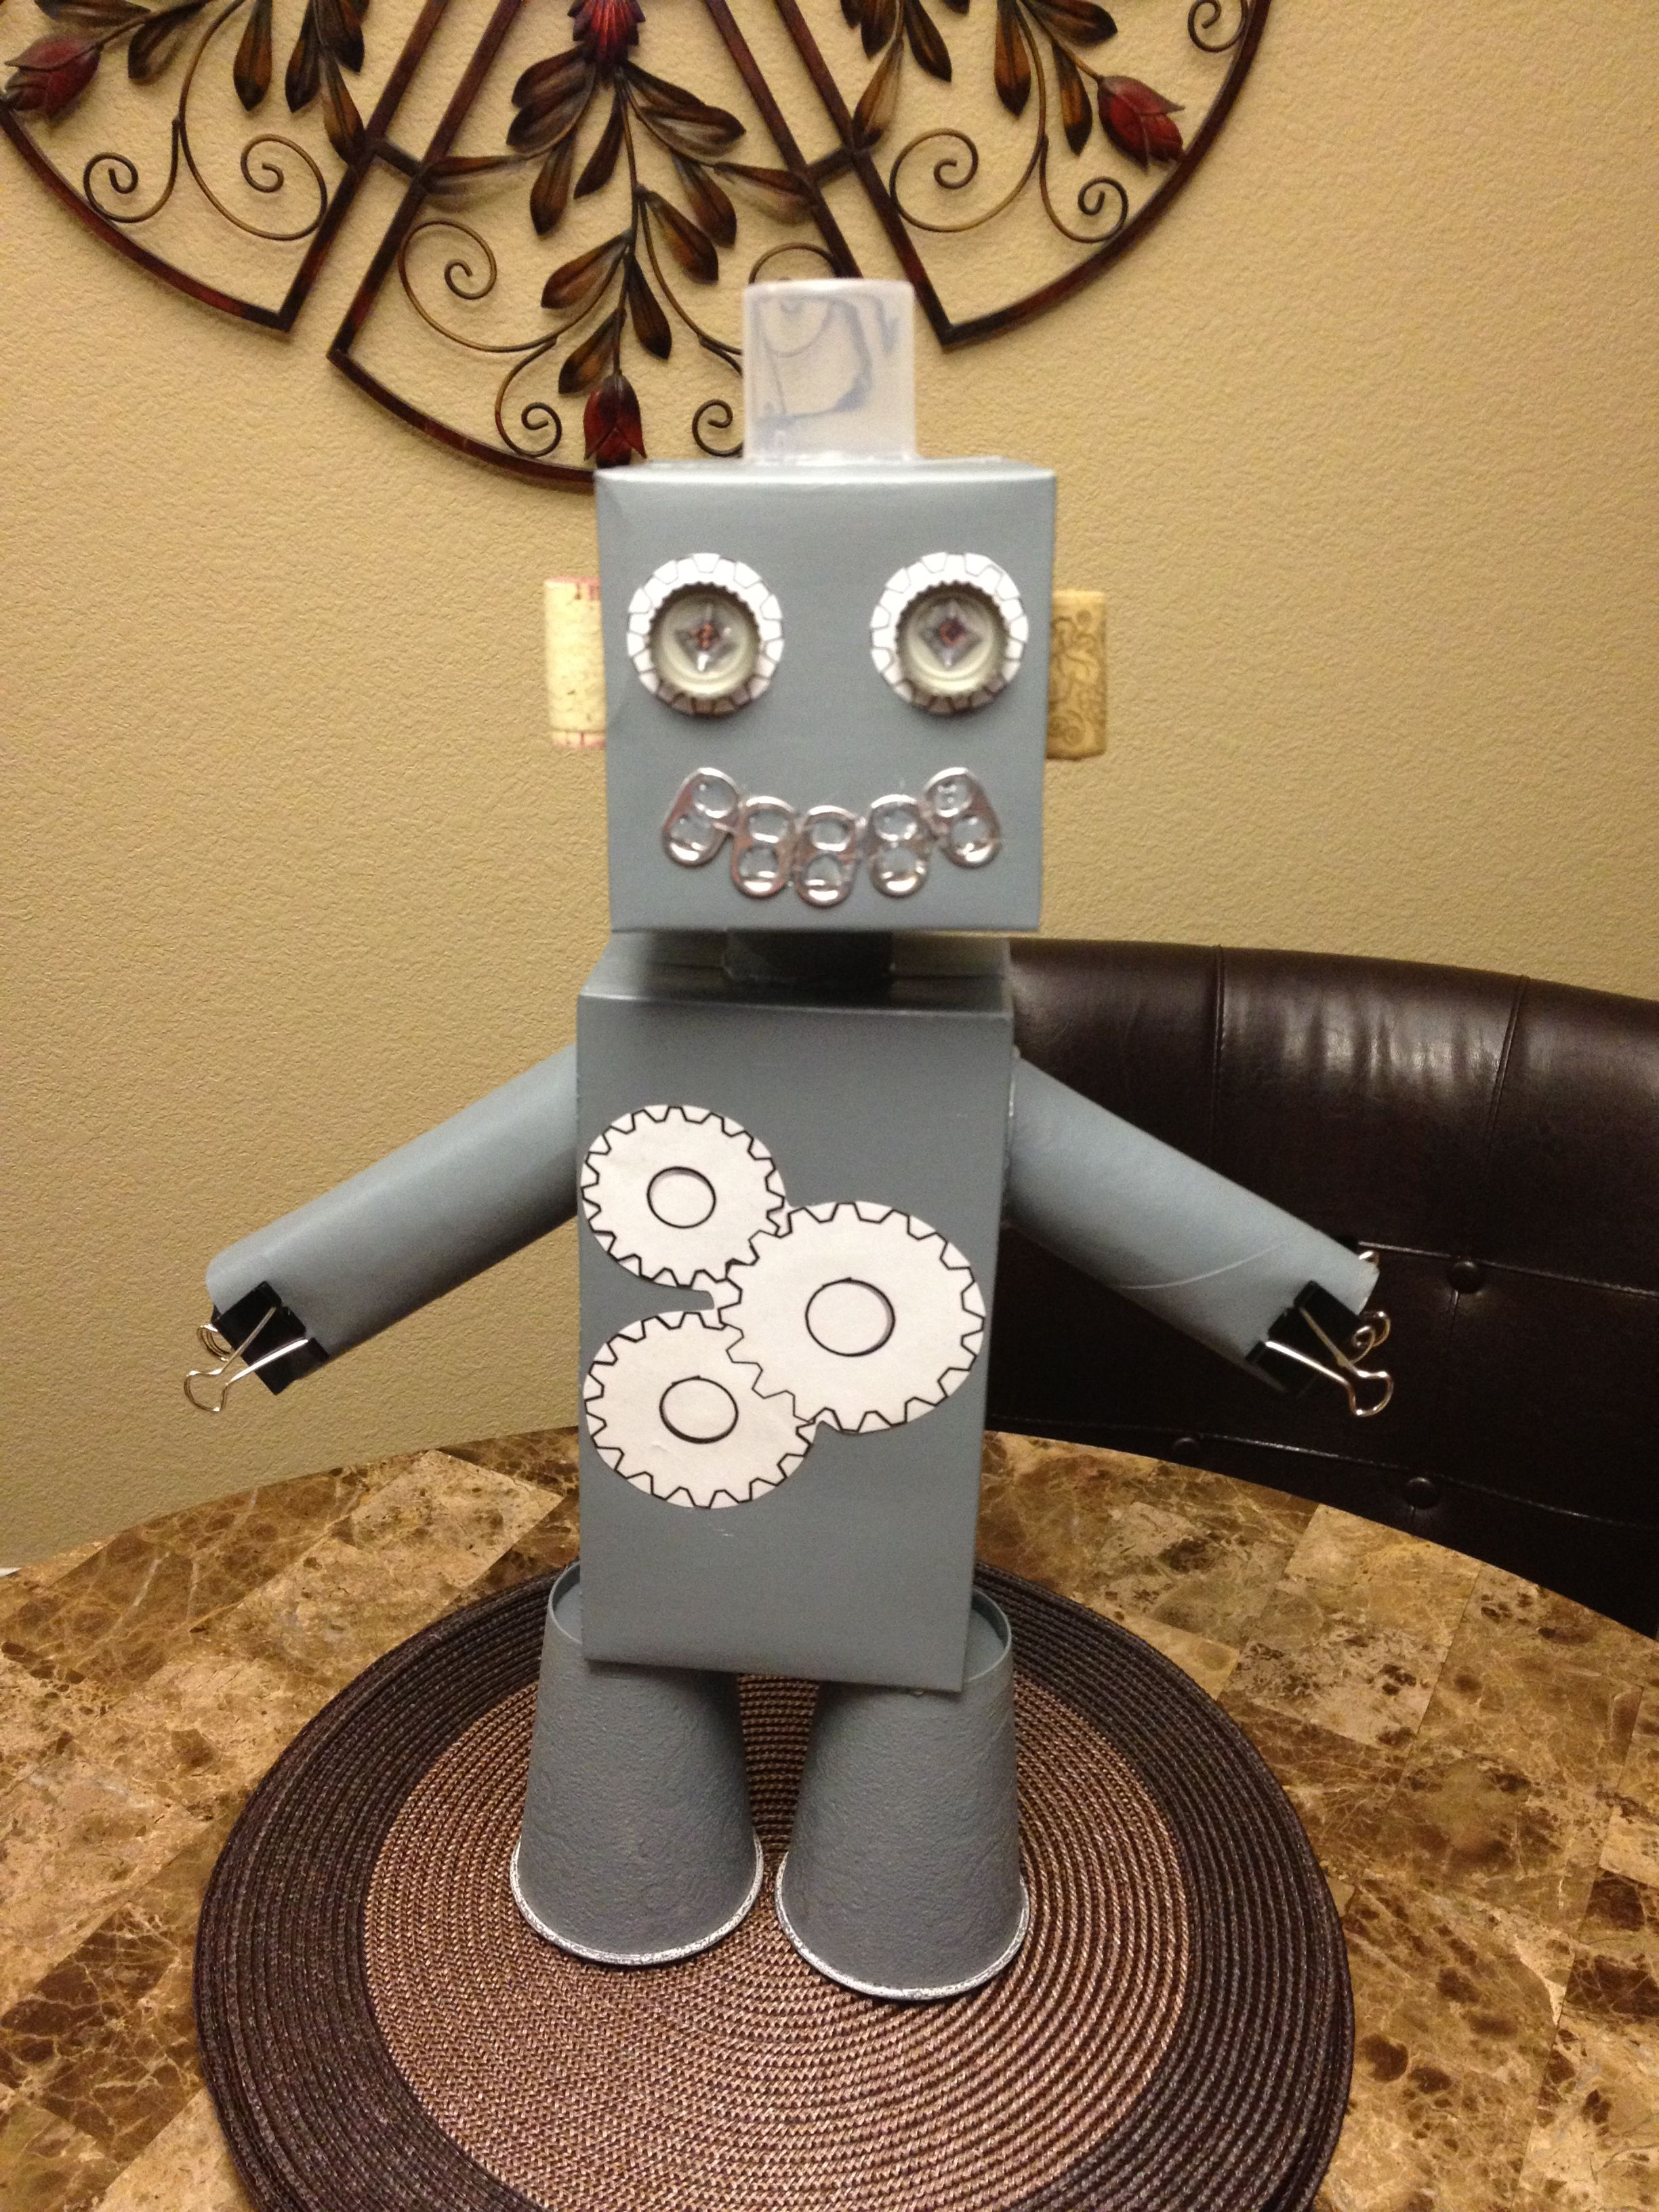 School Project Build A Robot Using Shapes With Images